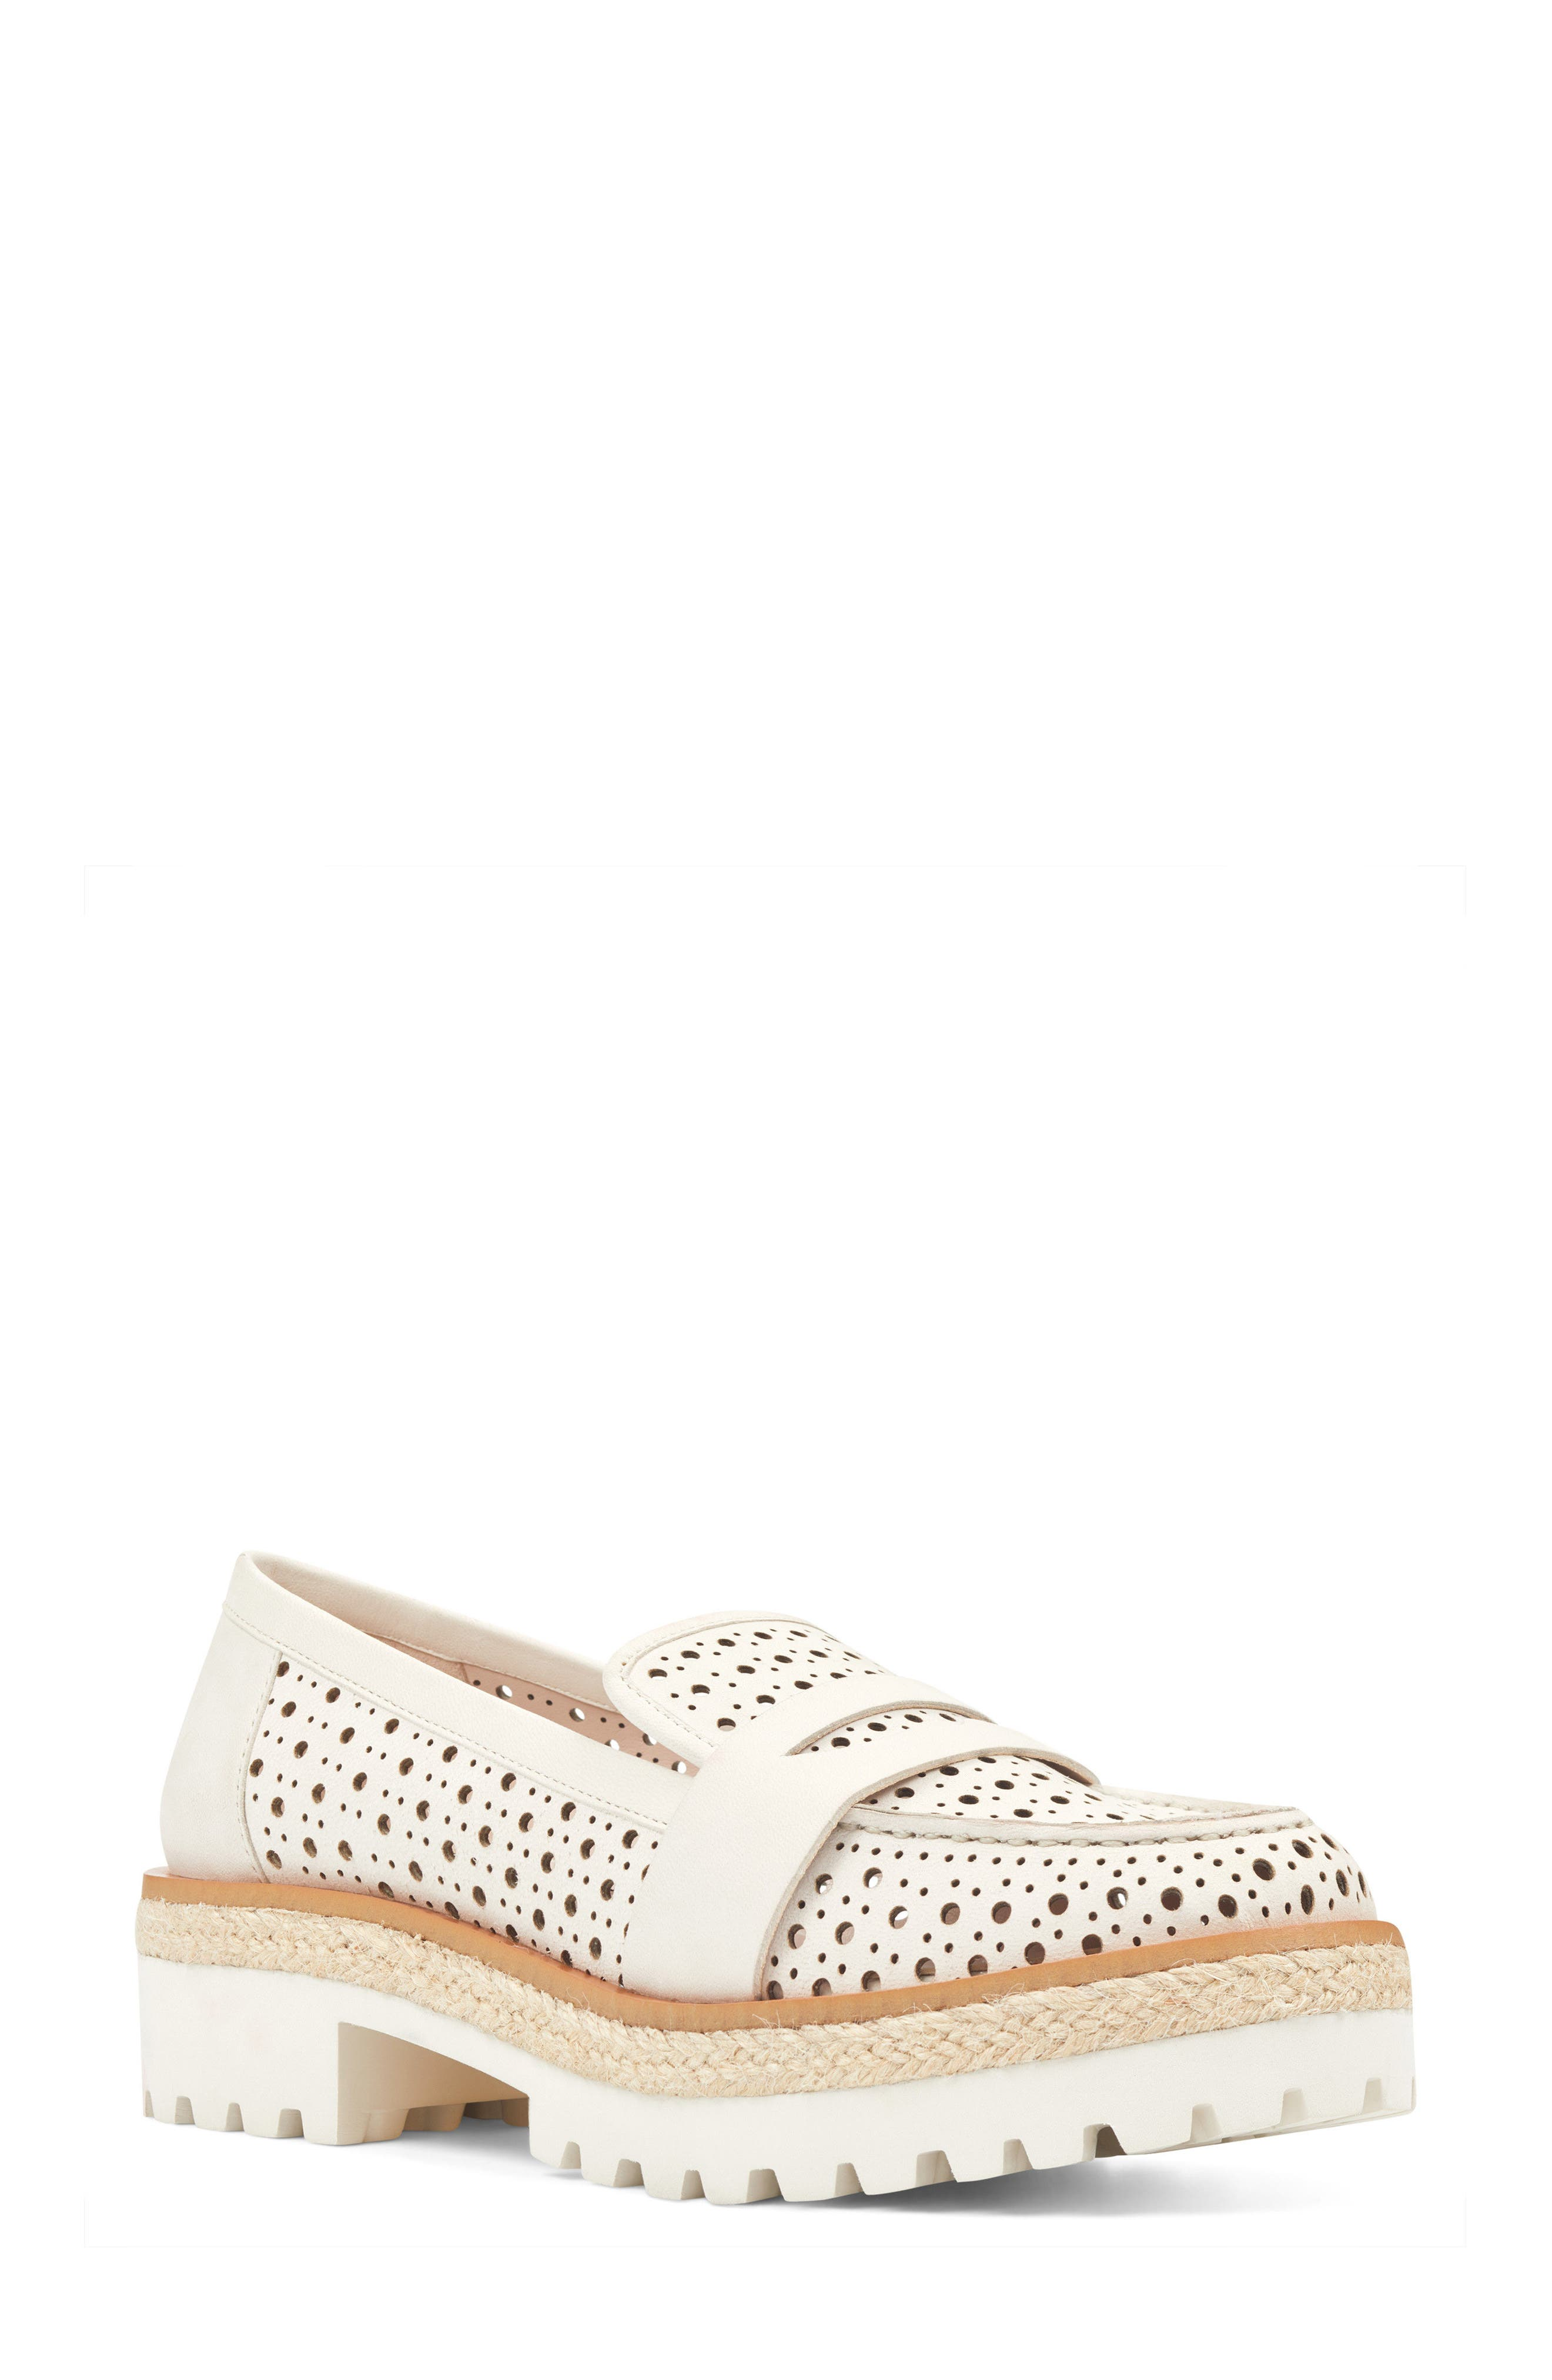 Gradskool Perforated Penny Loafer,                         Main,                         color, Off White Leather